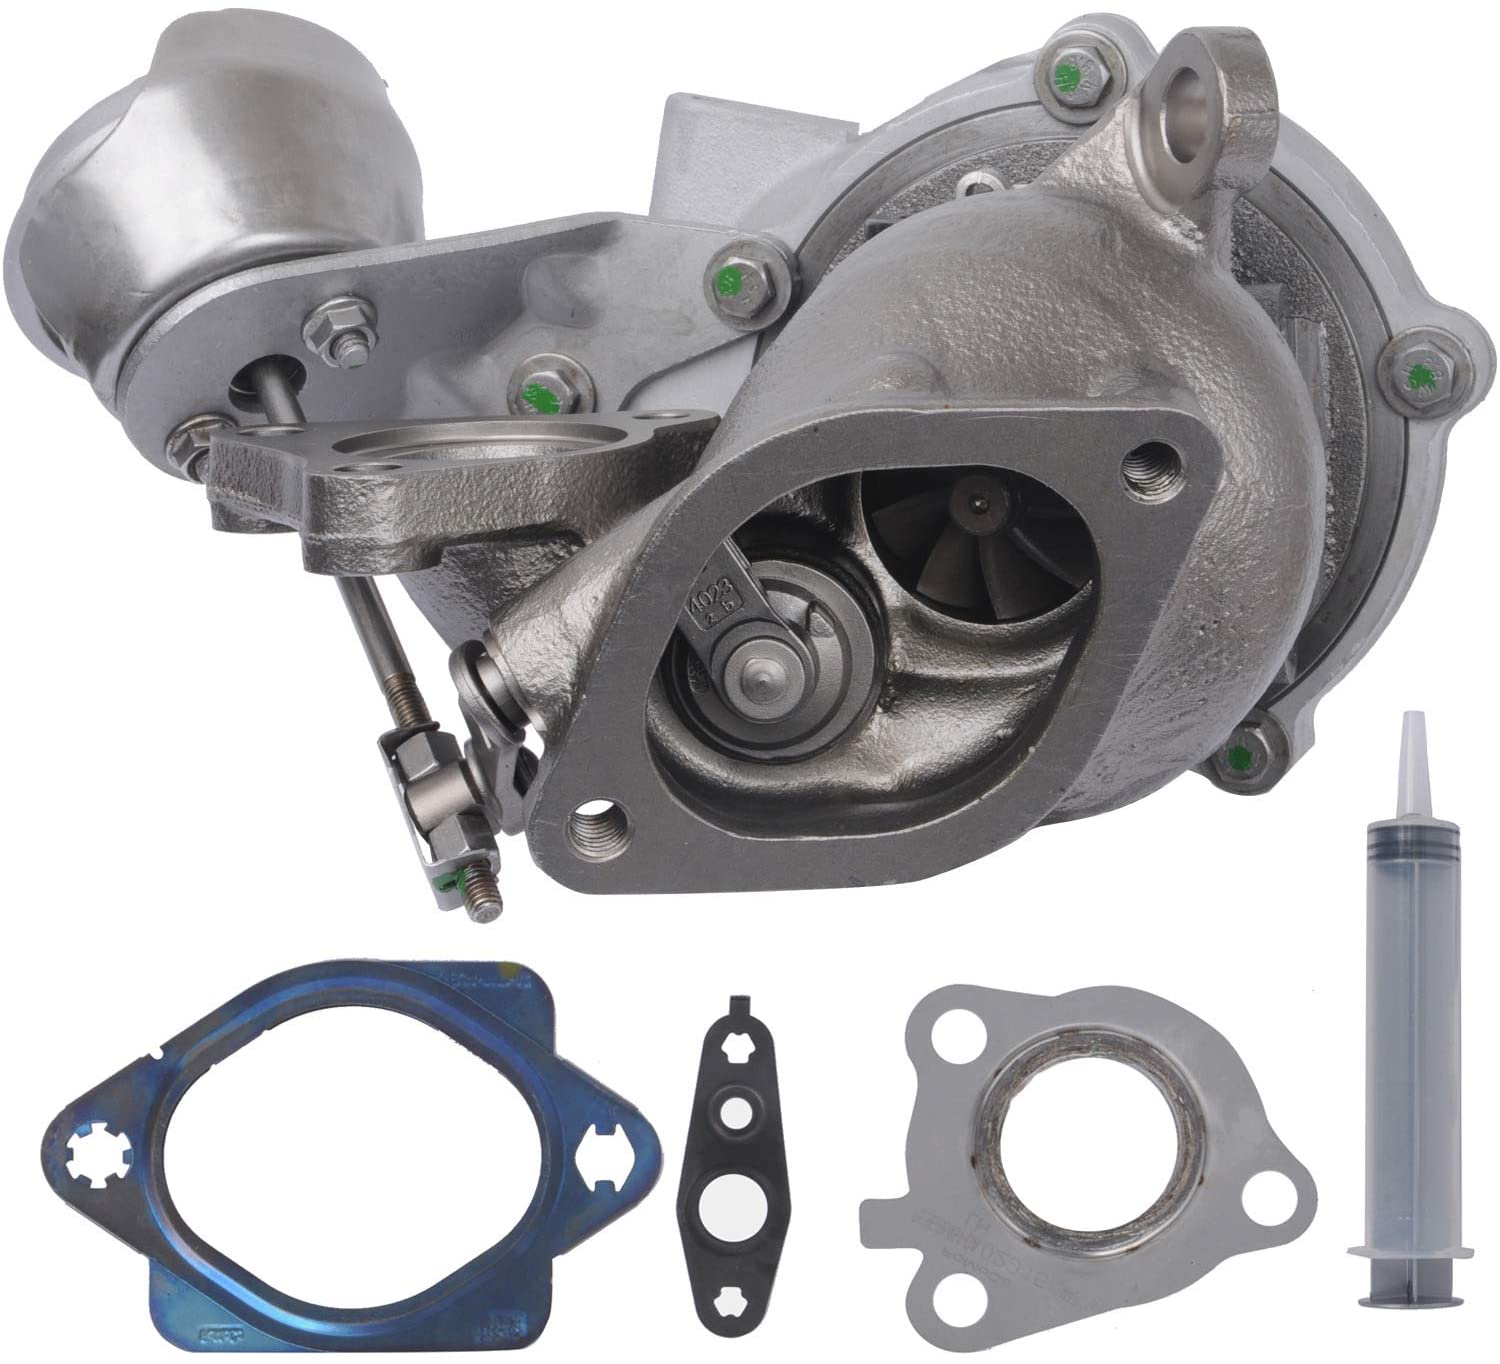 A1 Cardone 2T-223 Remanufactured Turbocharger, 1 Pack